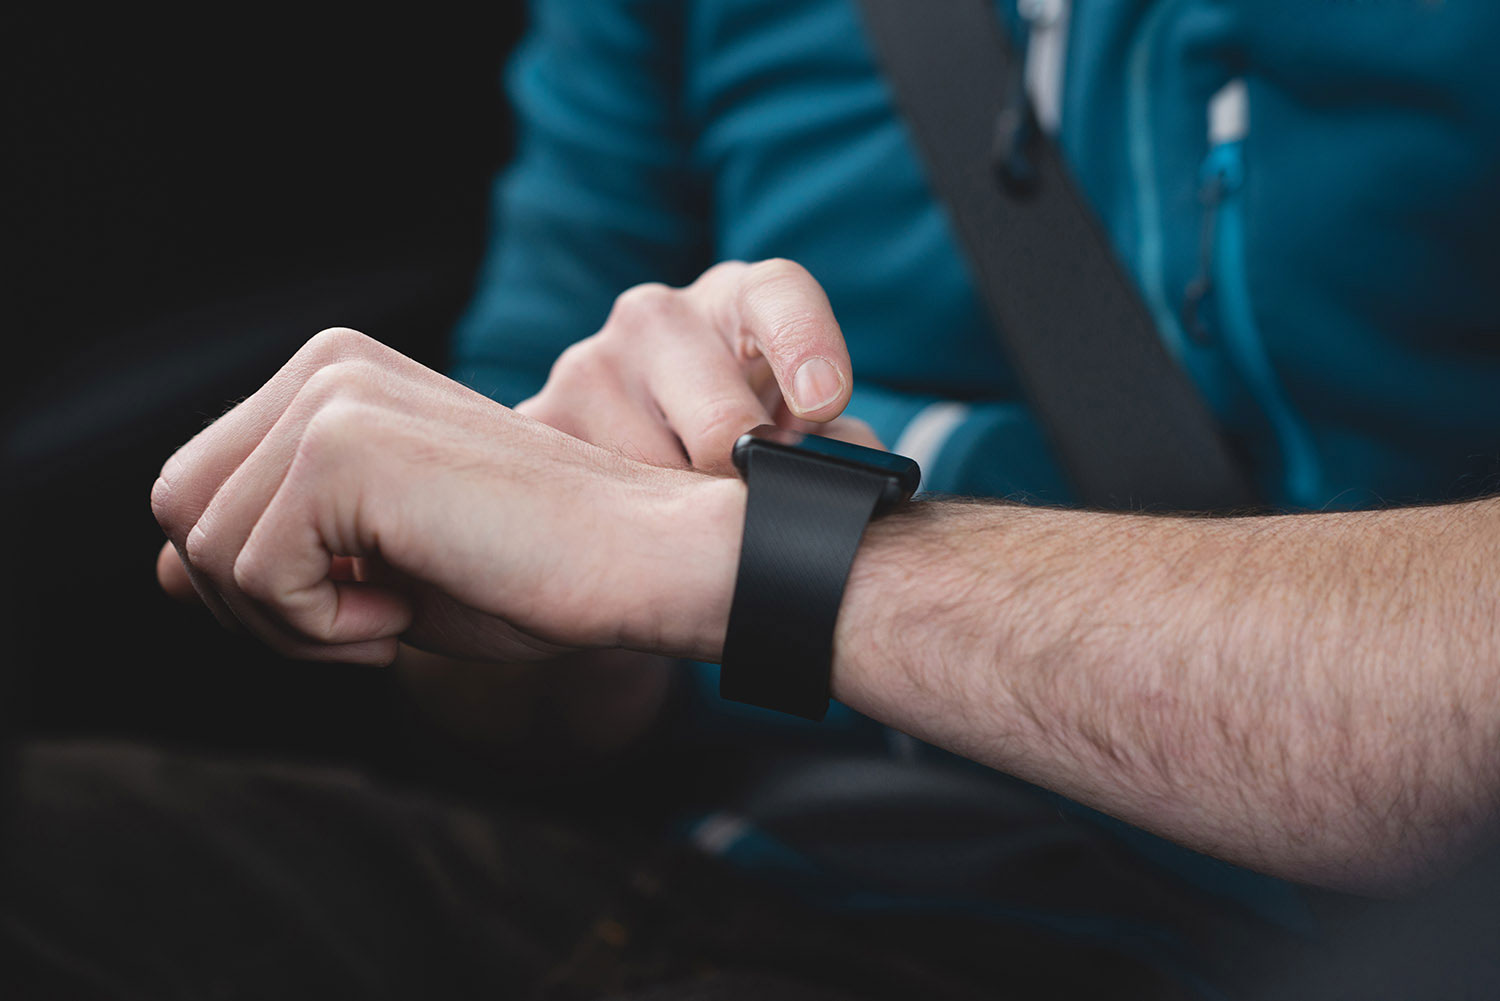 Man looks at smart watch